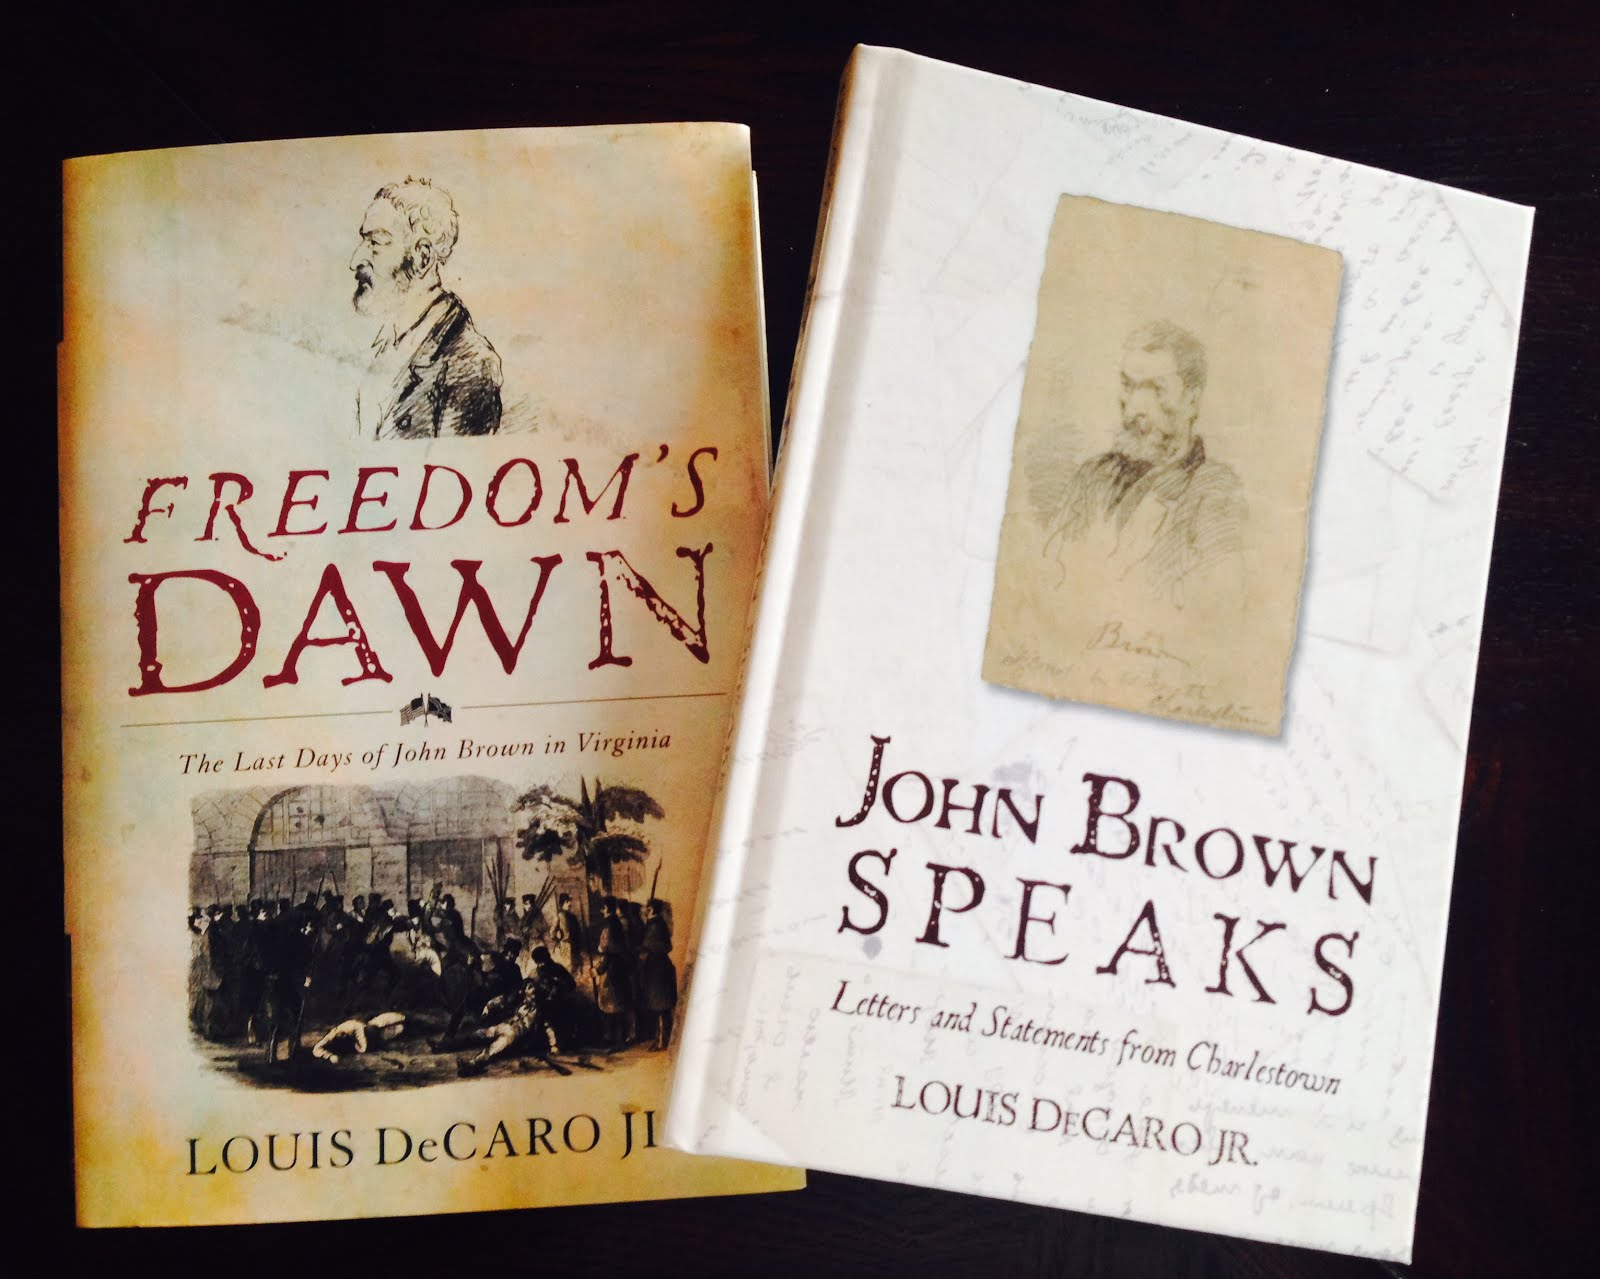 john brown the abolitionist a biographer s blog dom s dawn and john brown speaks